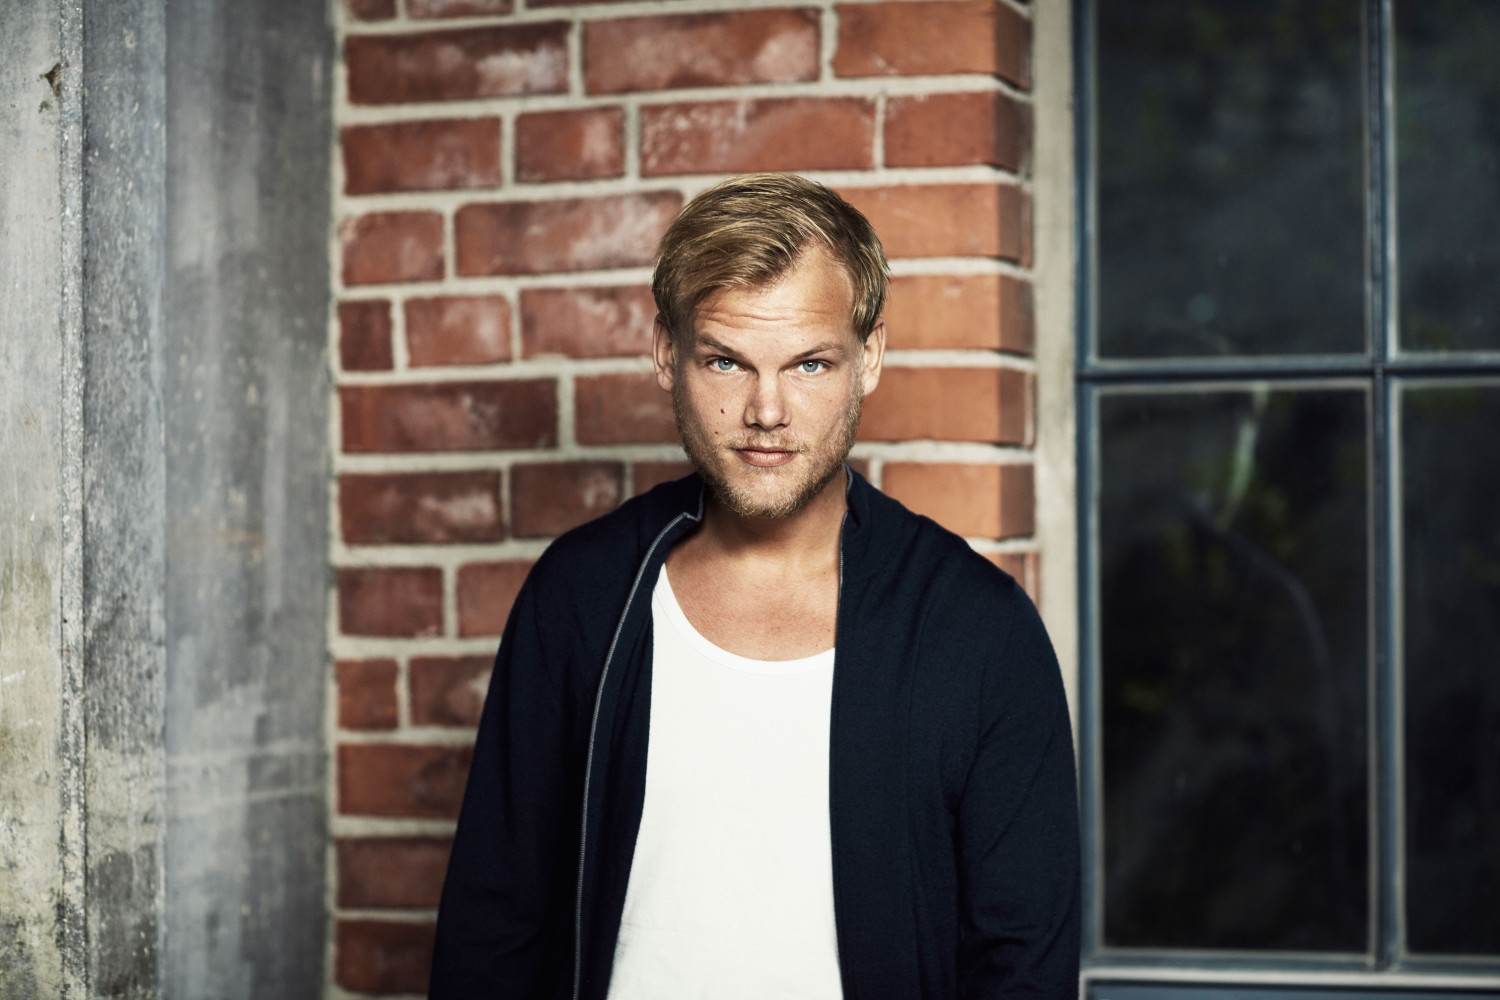 Music Releases10 hours ago Listen to Avicii's new album, TIM